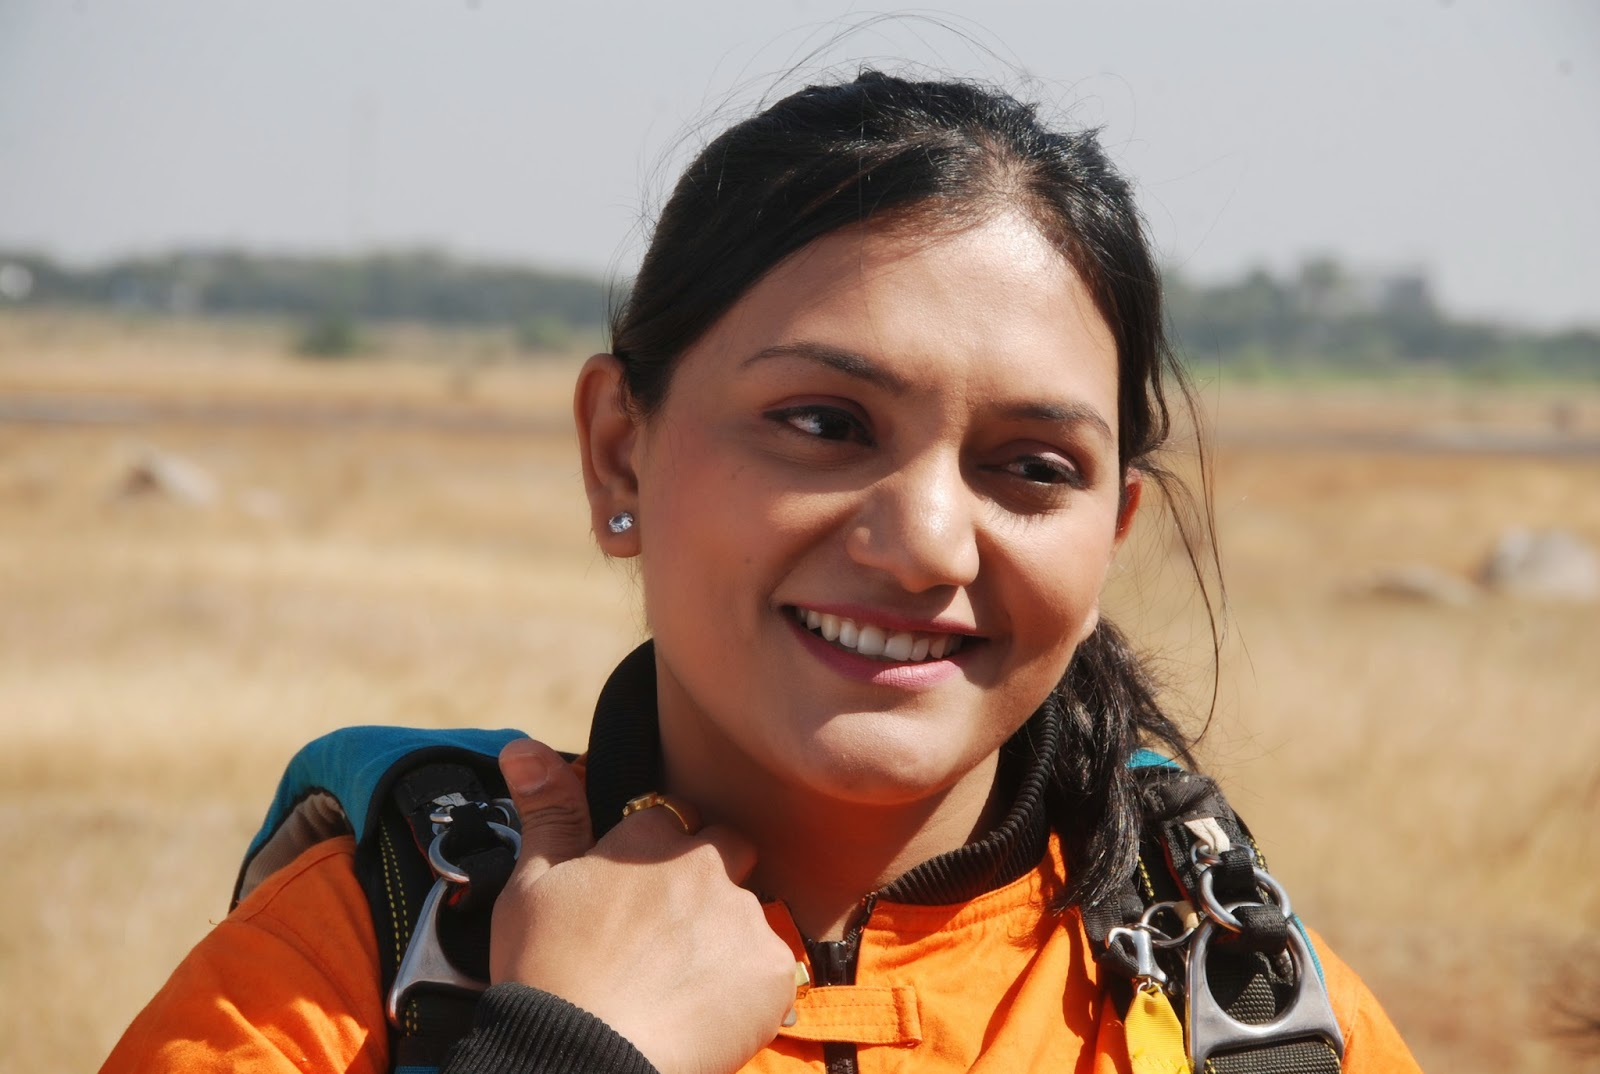 Gravity defying Skydiving in a Saree !! – You Make India Proud